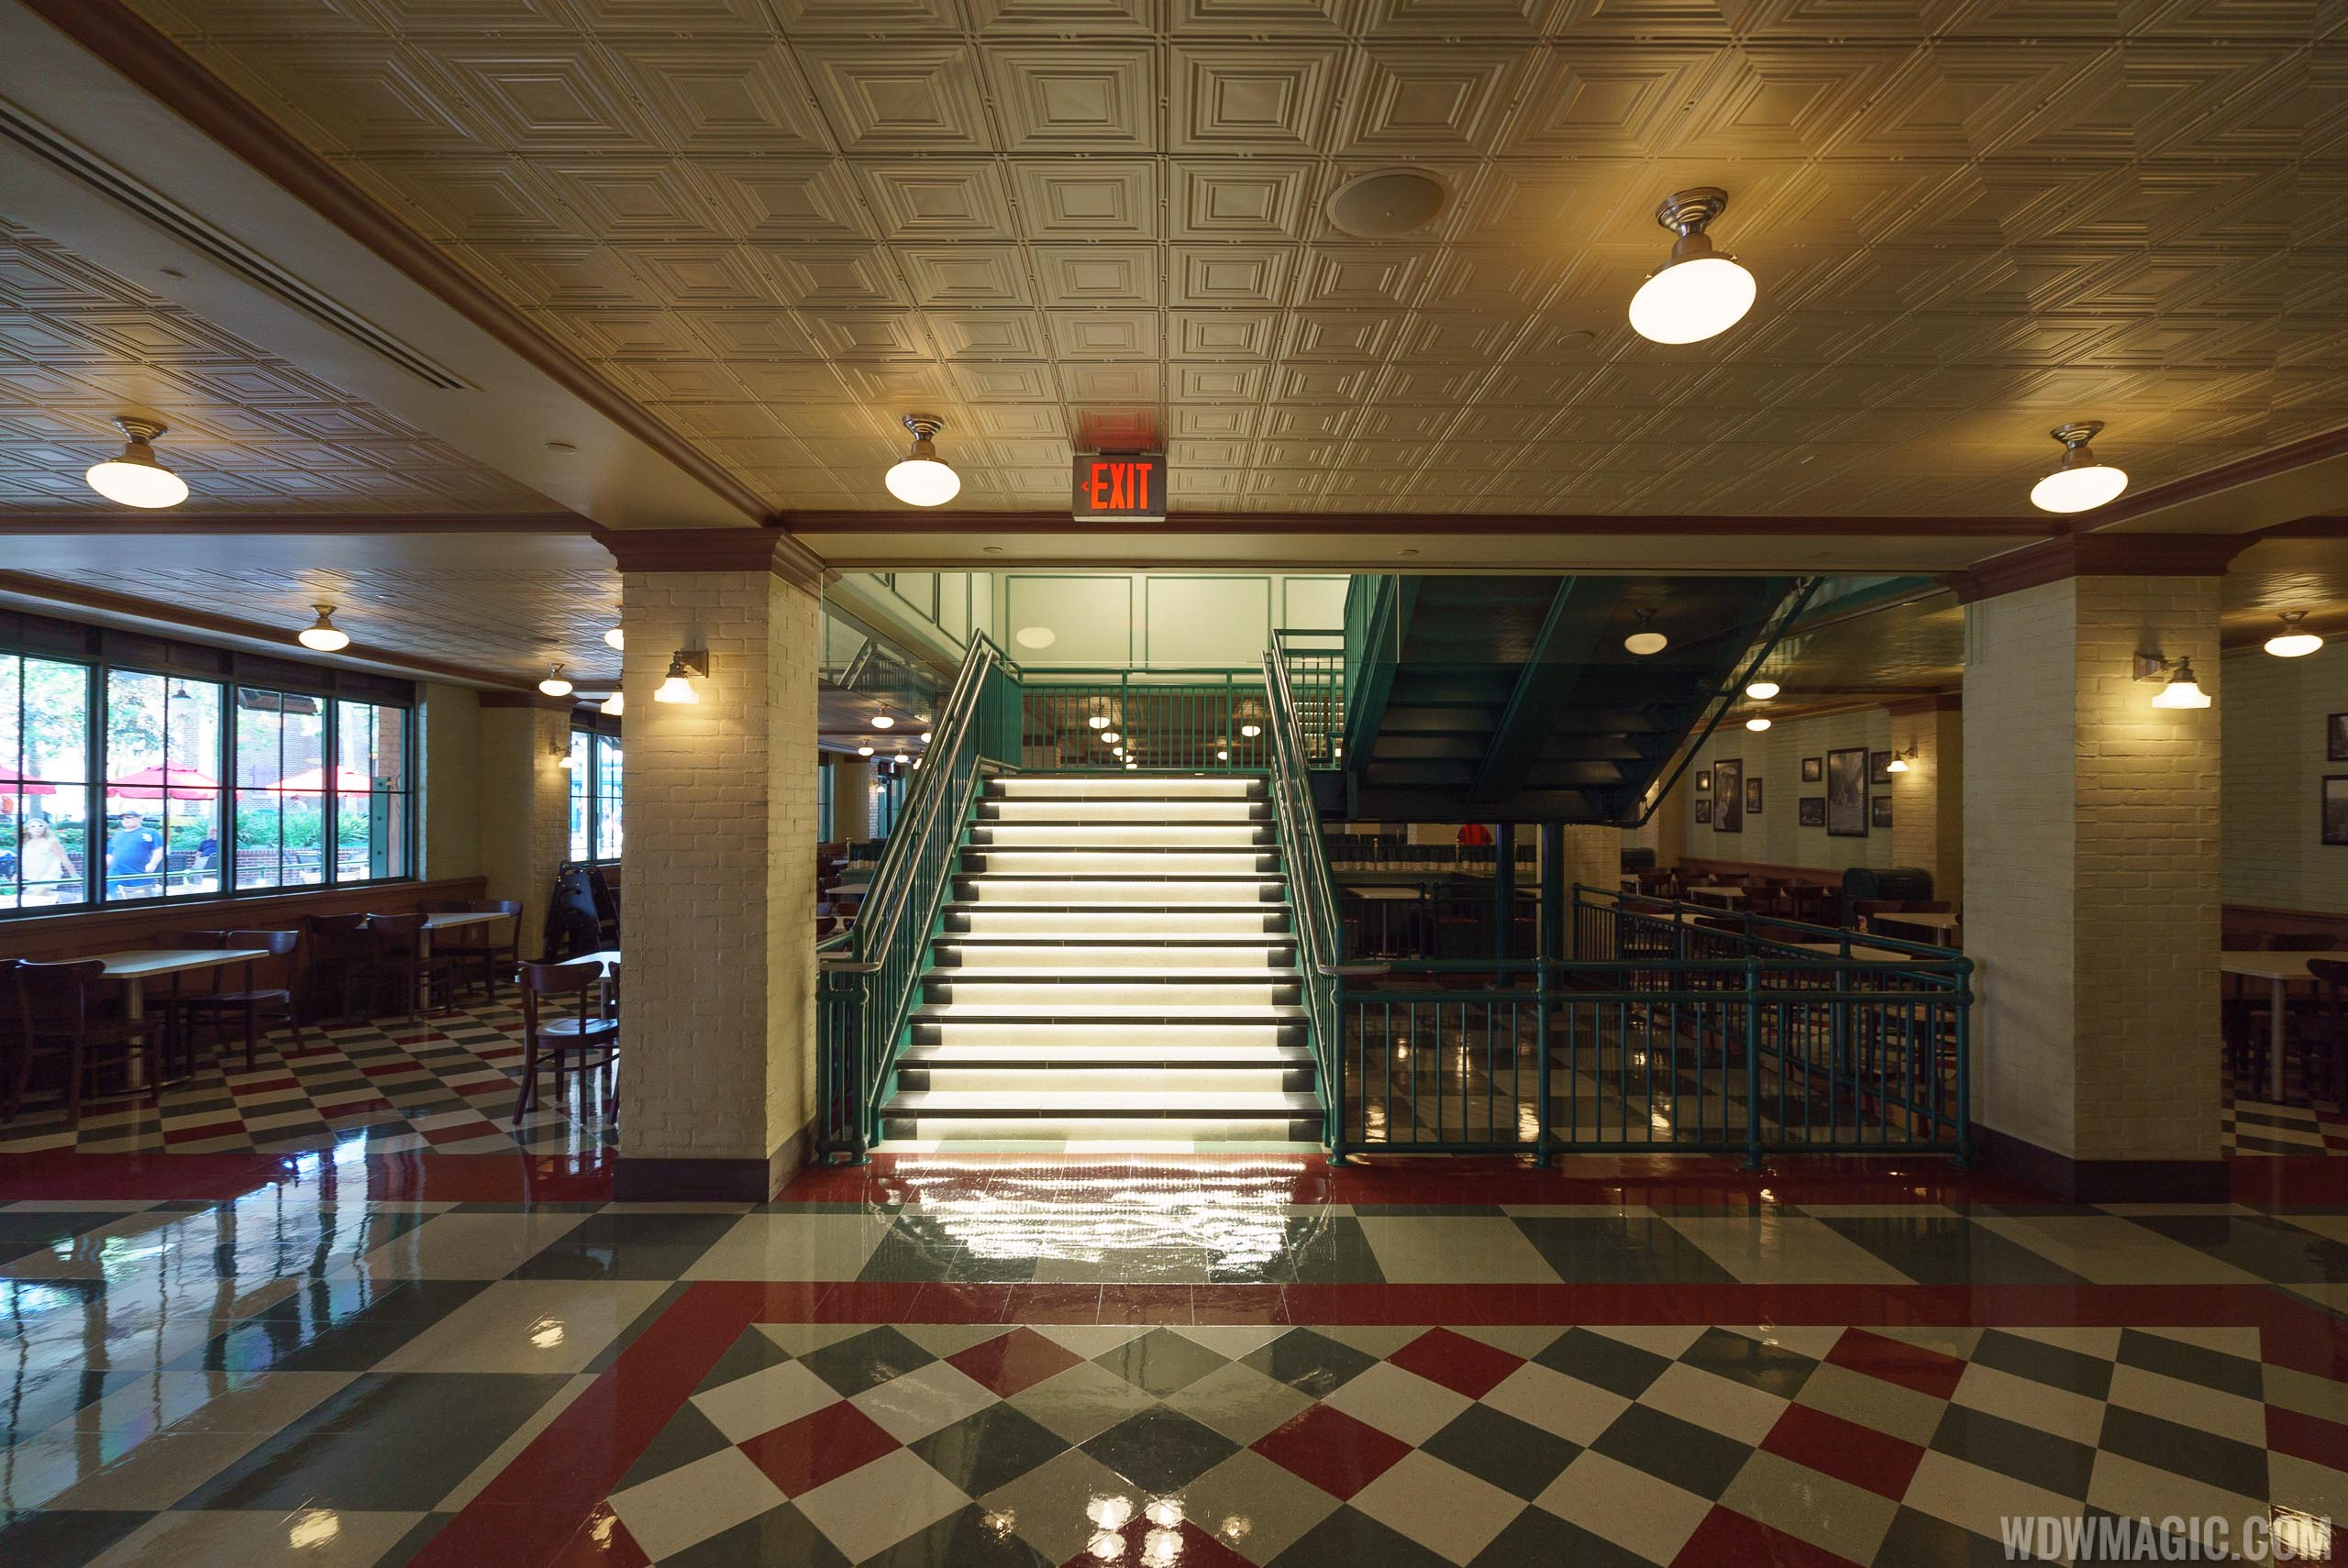 Inside PizzeRizzo - Staircase to the upper level dining room